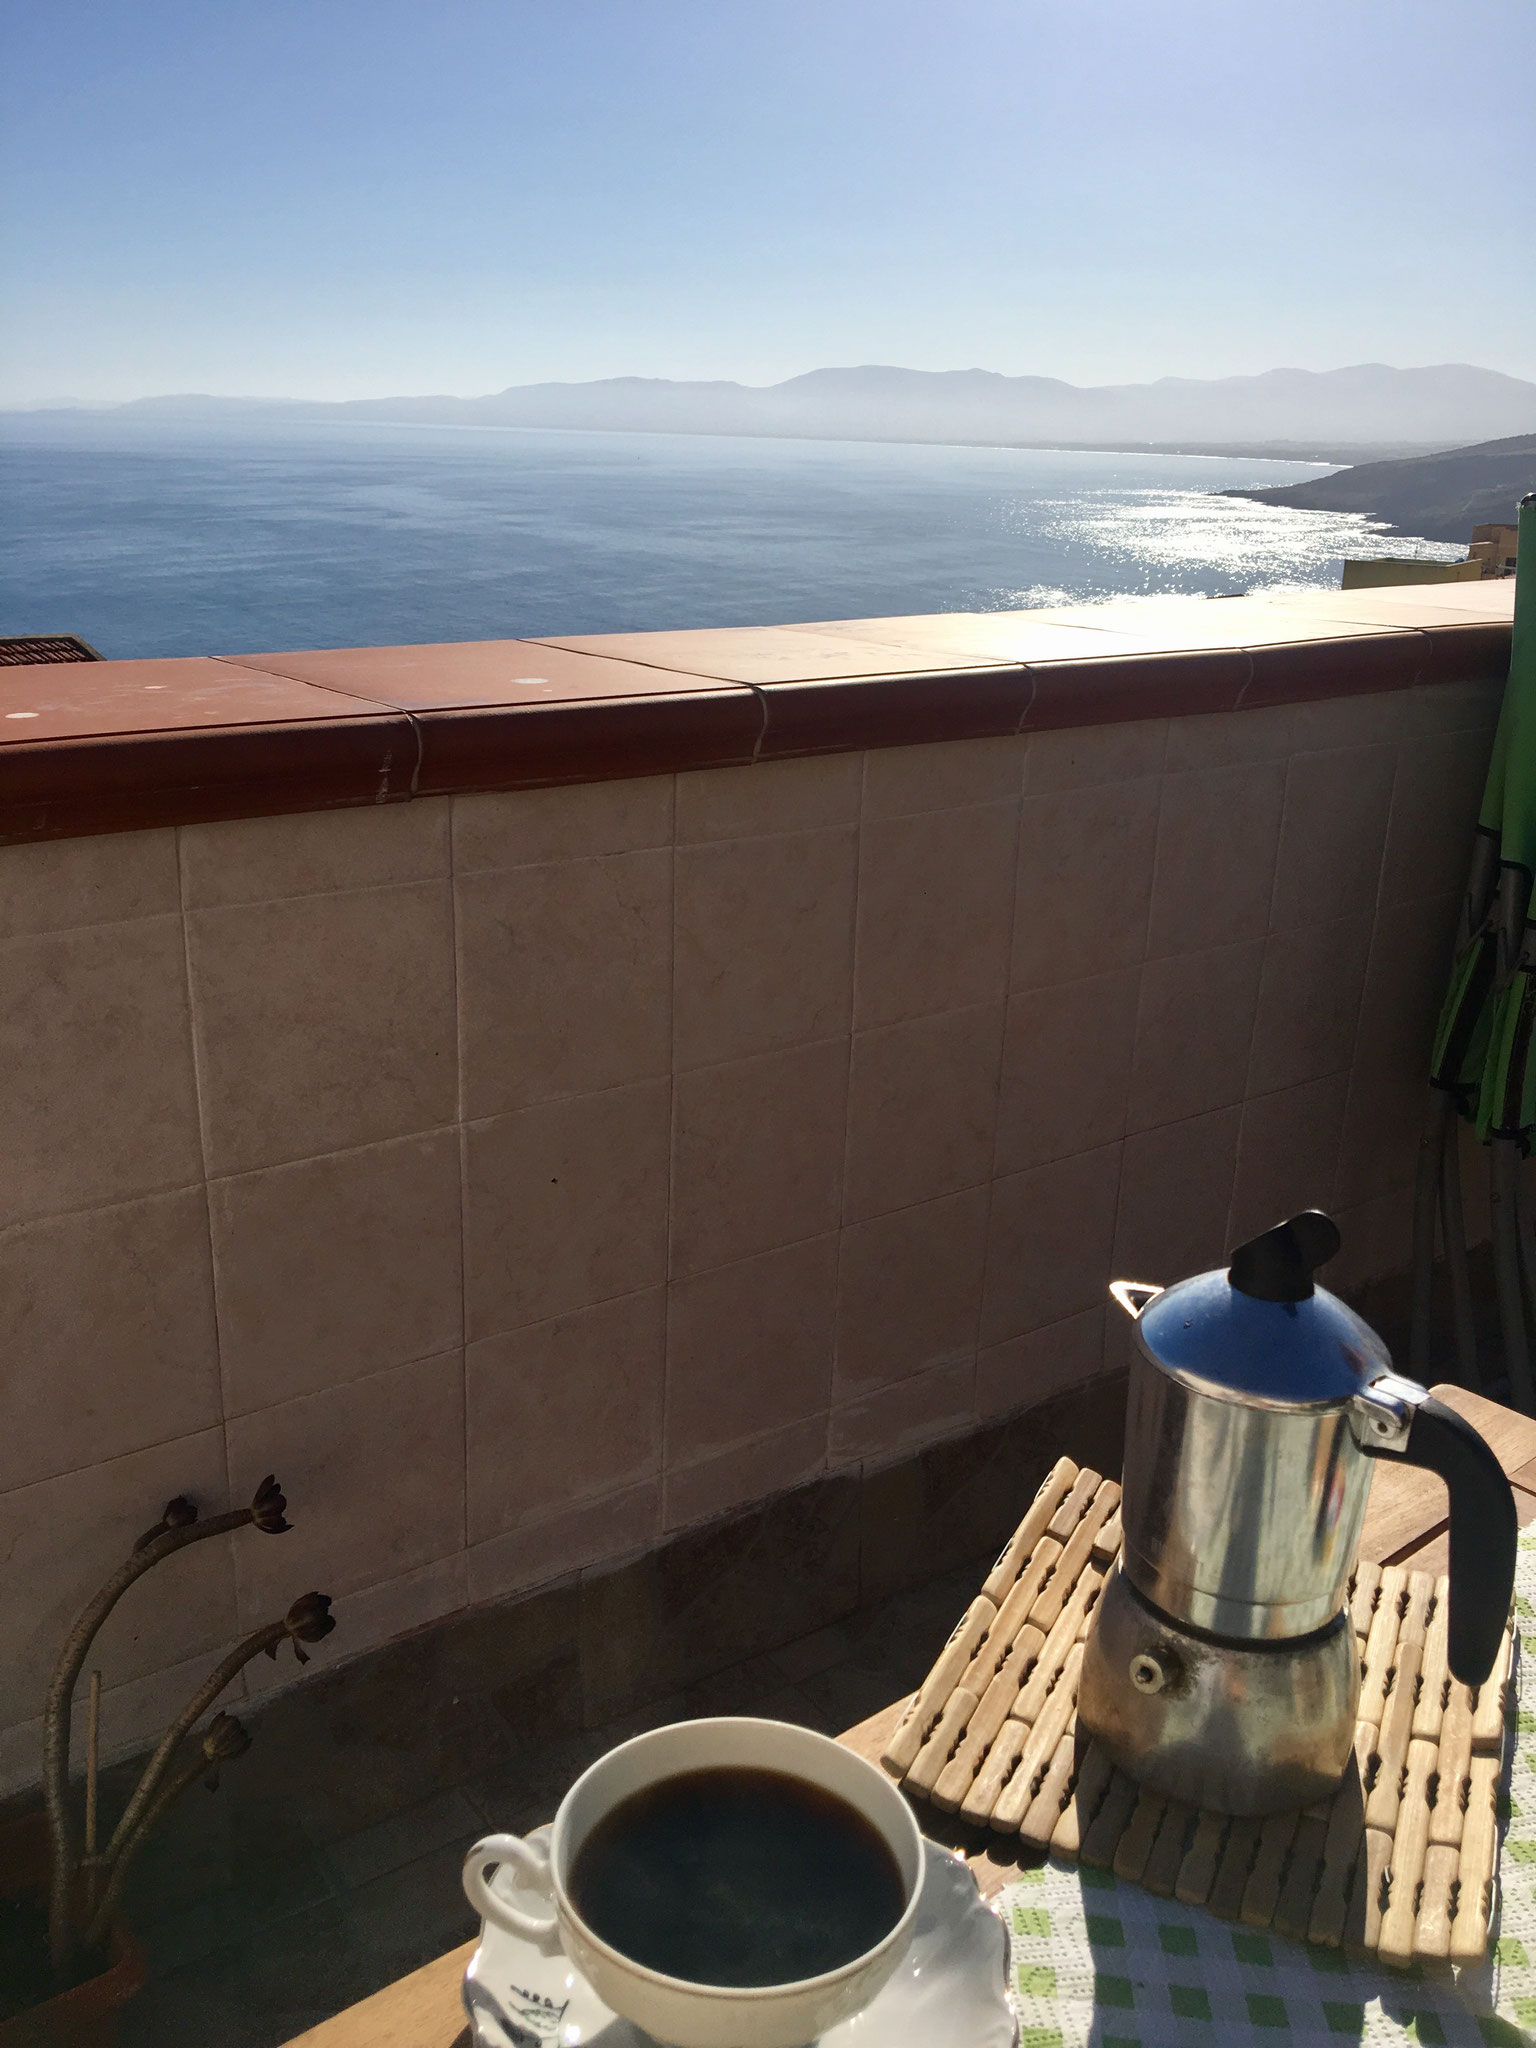 Coffee on the sunny terrace of our B&B